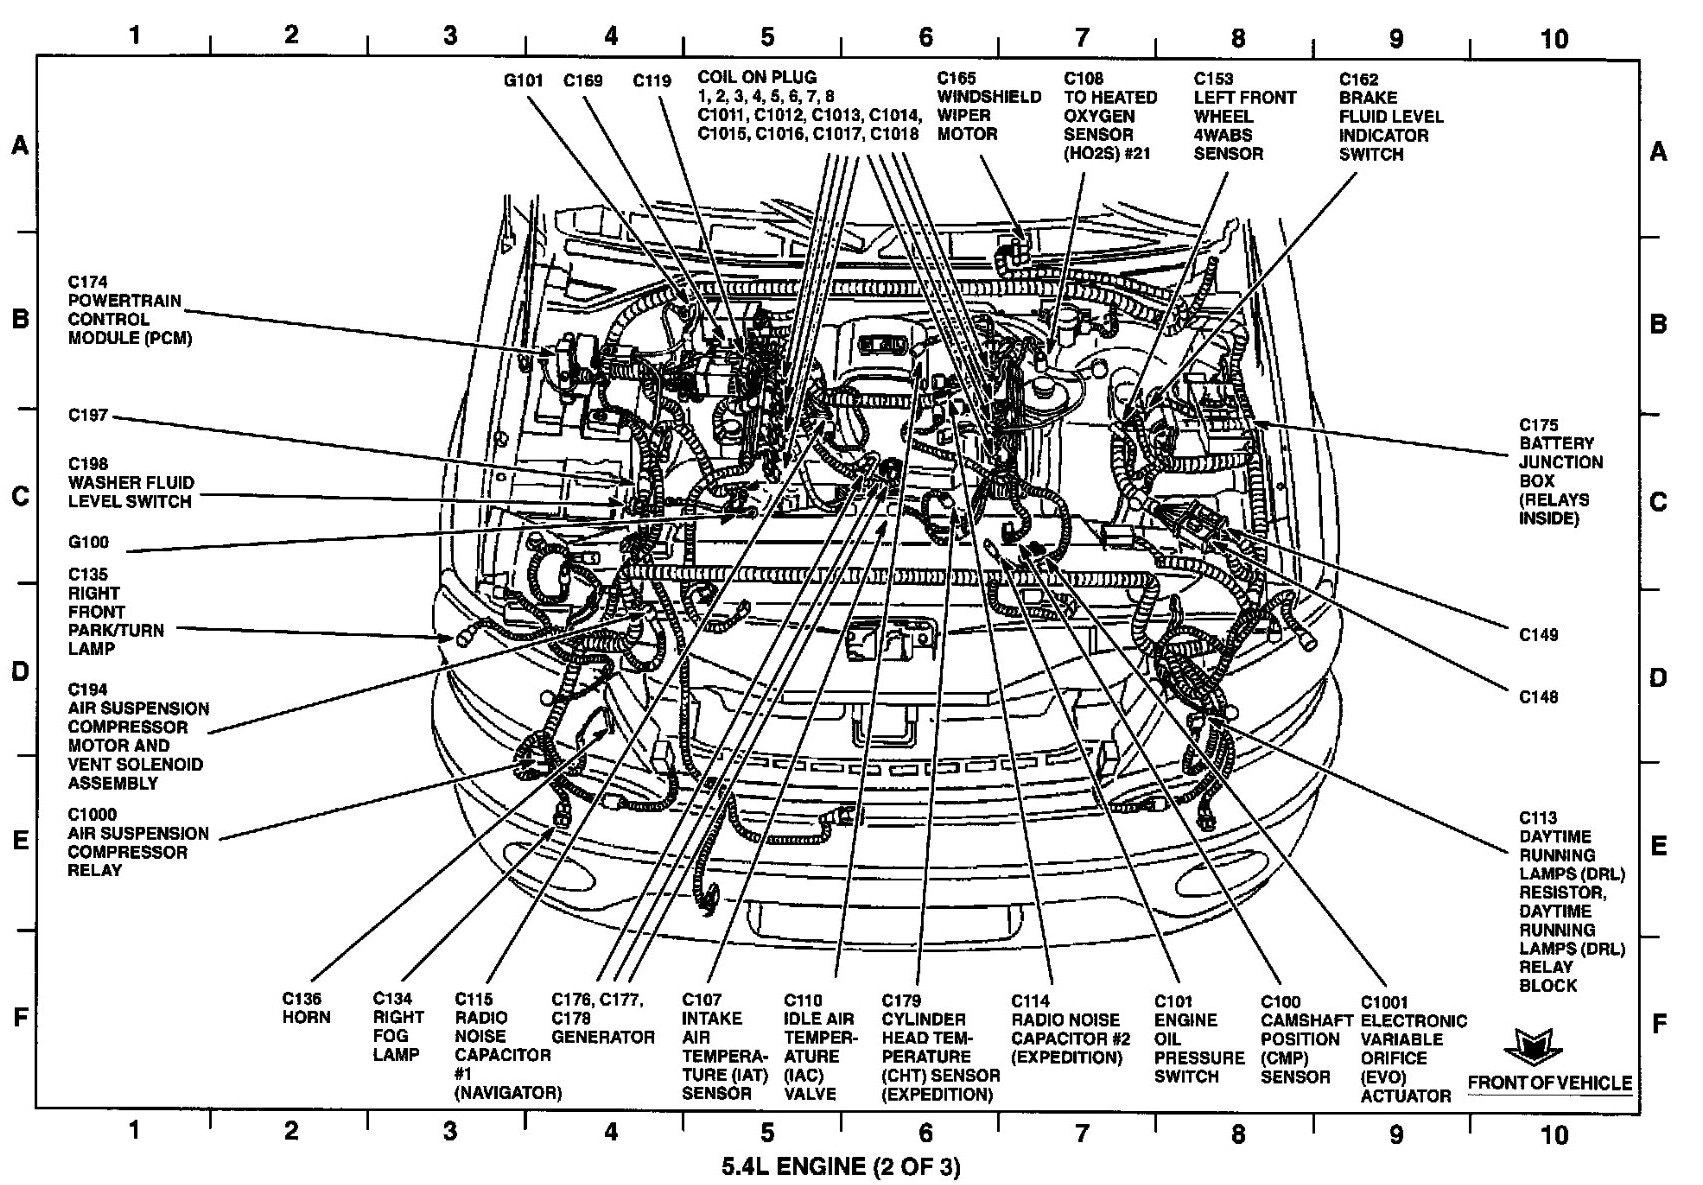 Ford Focus Zts Engine Diagram 3 Wire Gm Alternator Diagram Toyota Tps Tukune Jeanjaures37 Fr